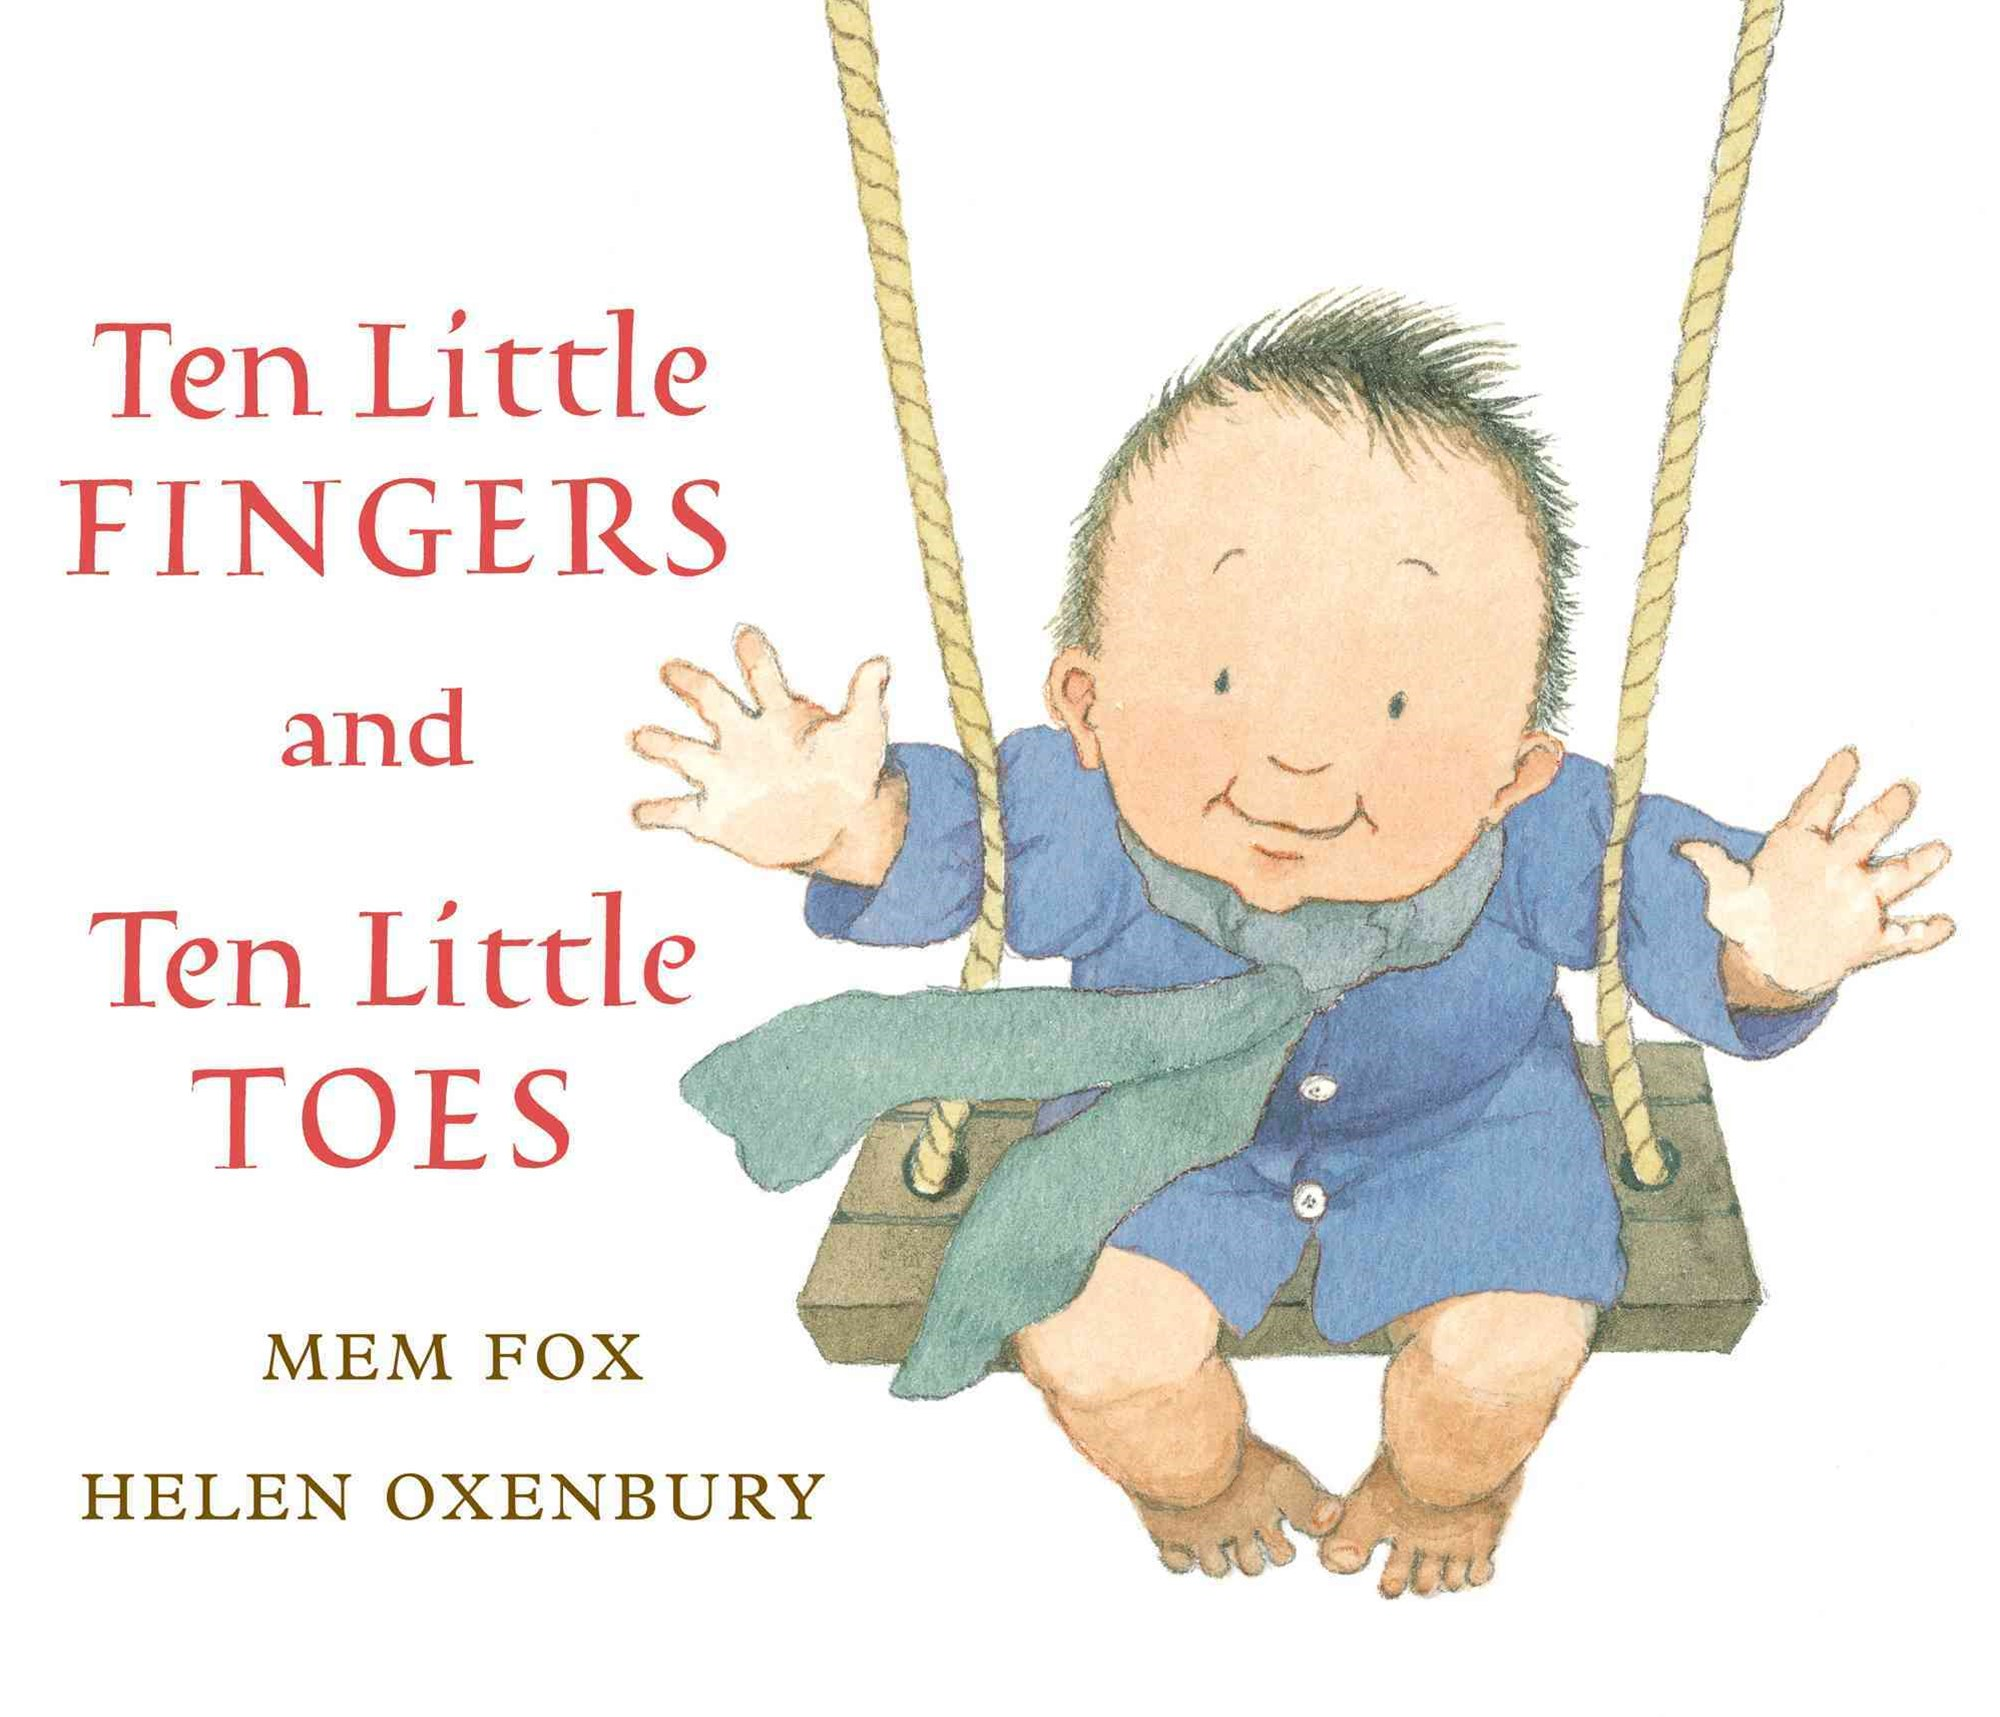 Ten Little Fingers and Ten Little Toes  (Lap Board Book)